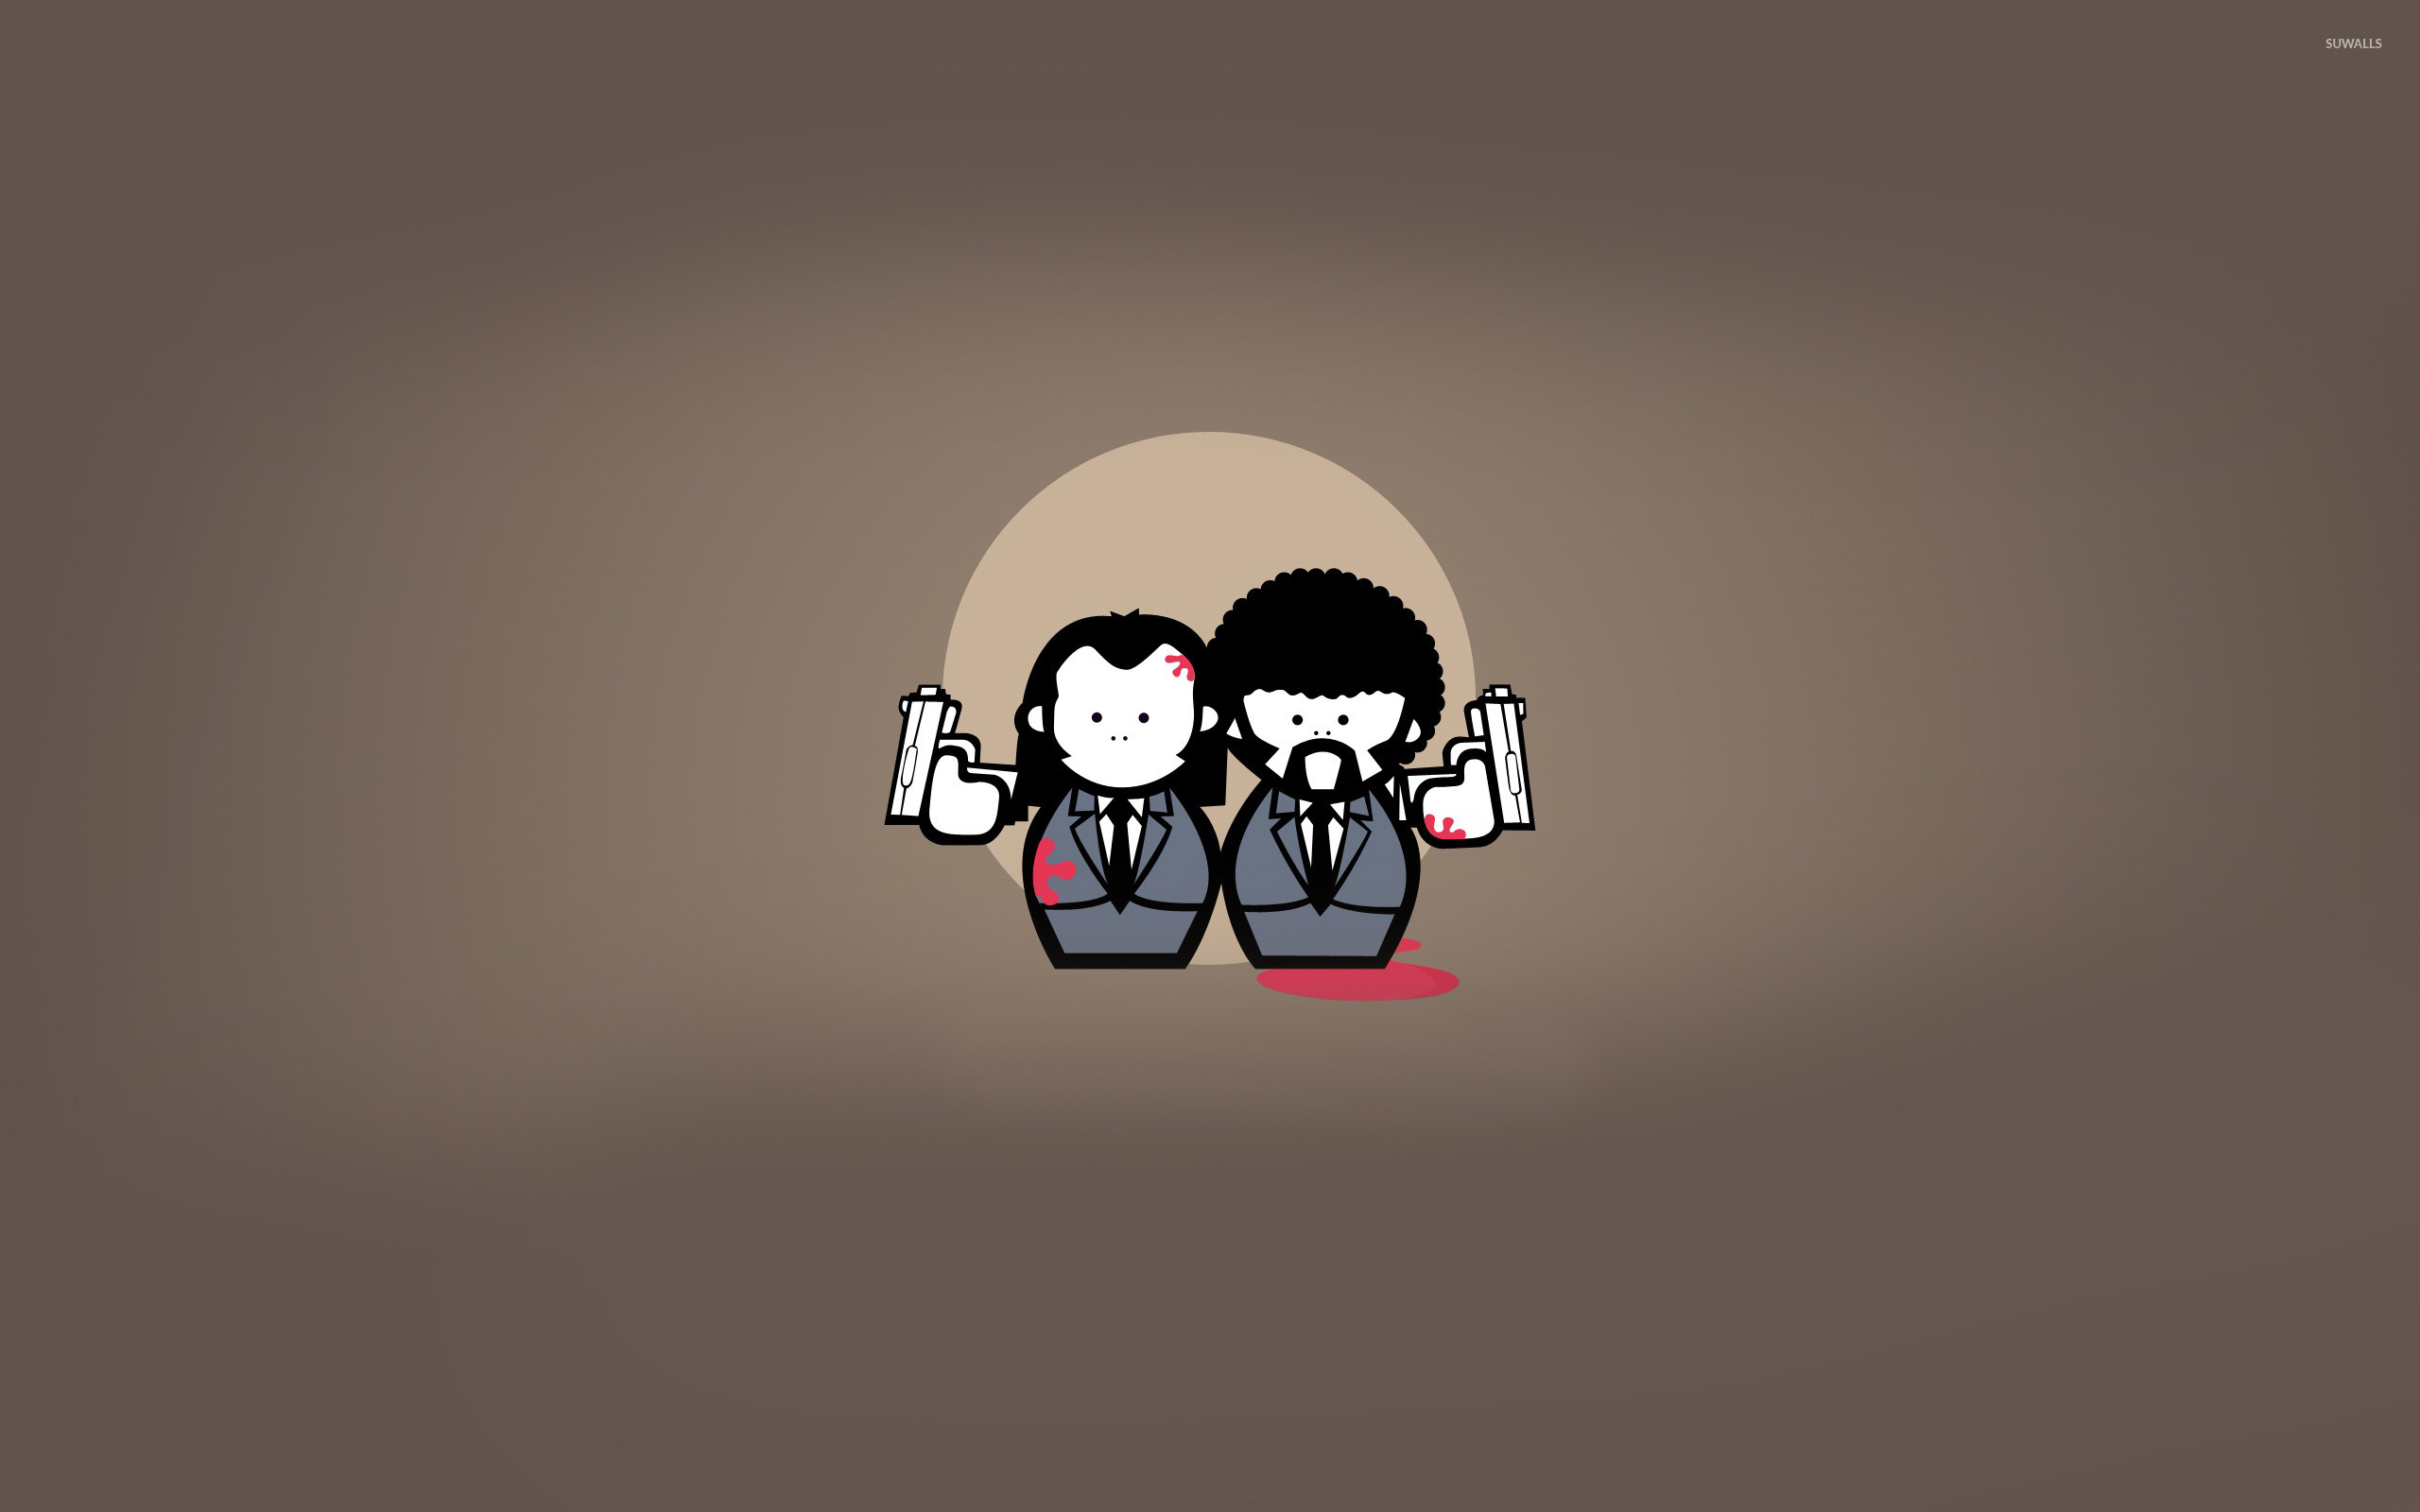 Pulp Fiction [2] Wallpaper